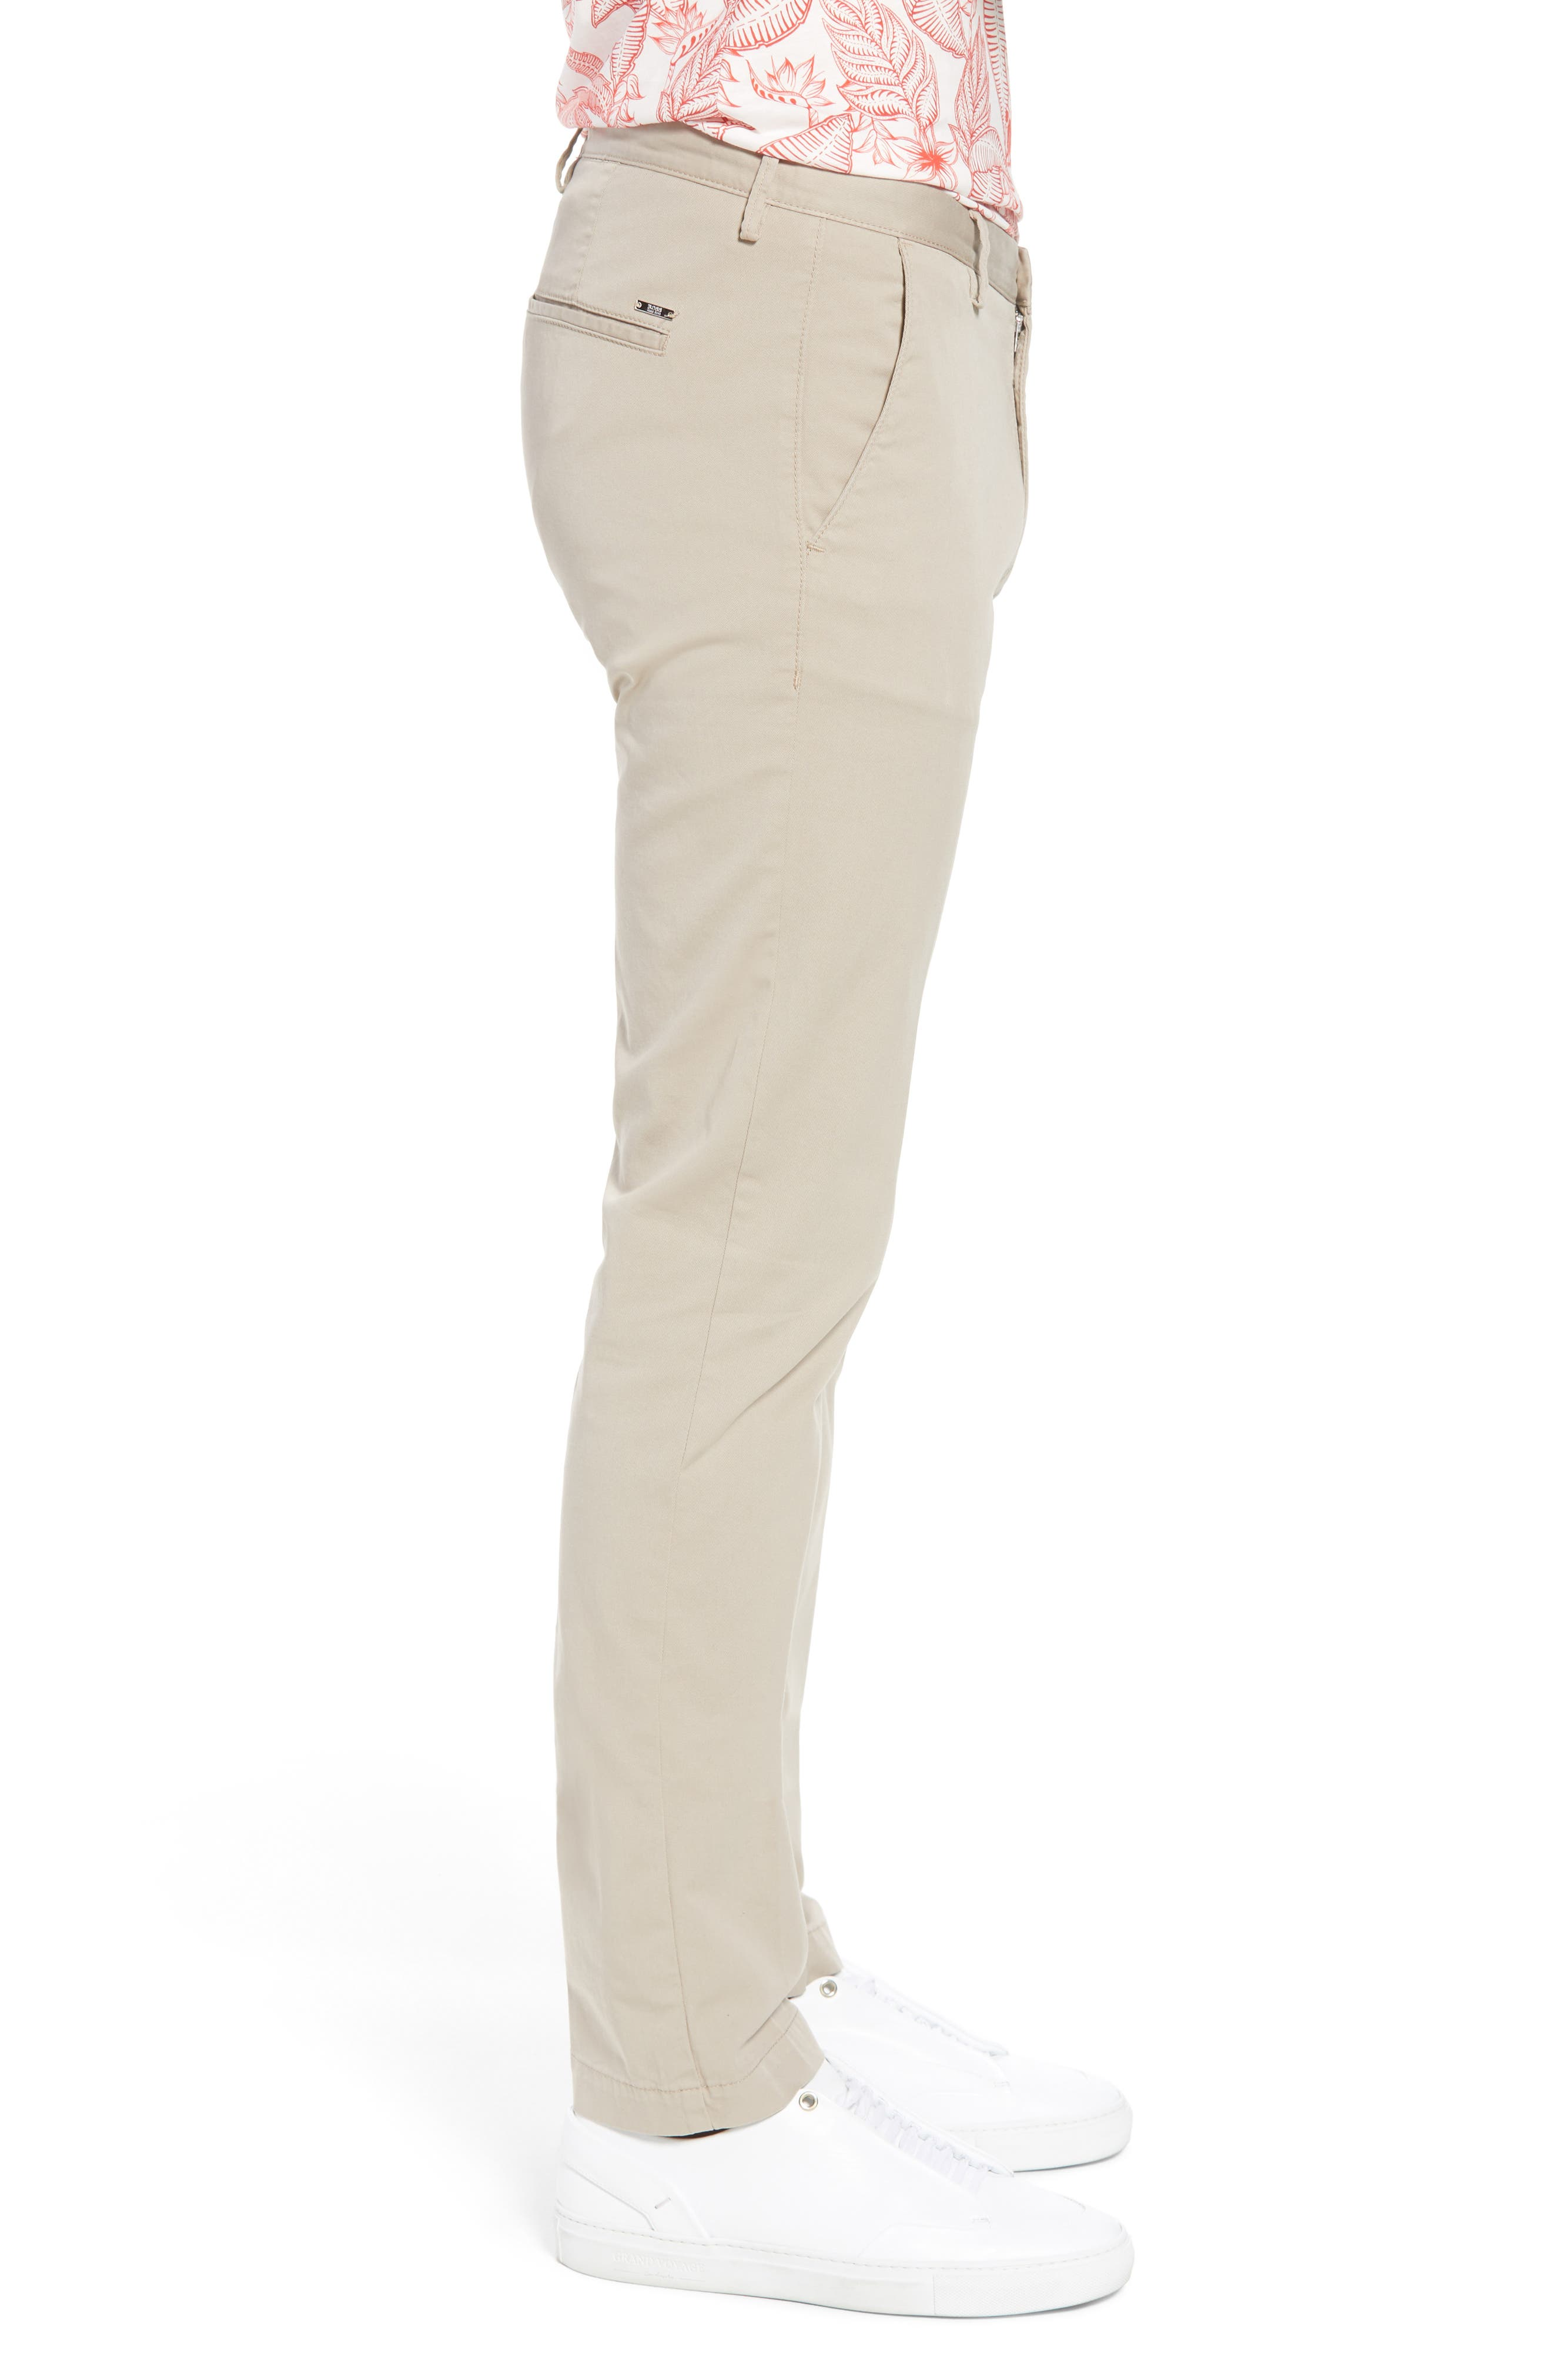 Rice Slim Fit Chino Pants,                             Alternate thumbnail 5, color,